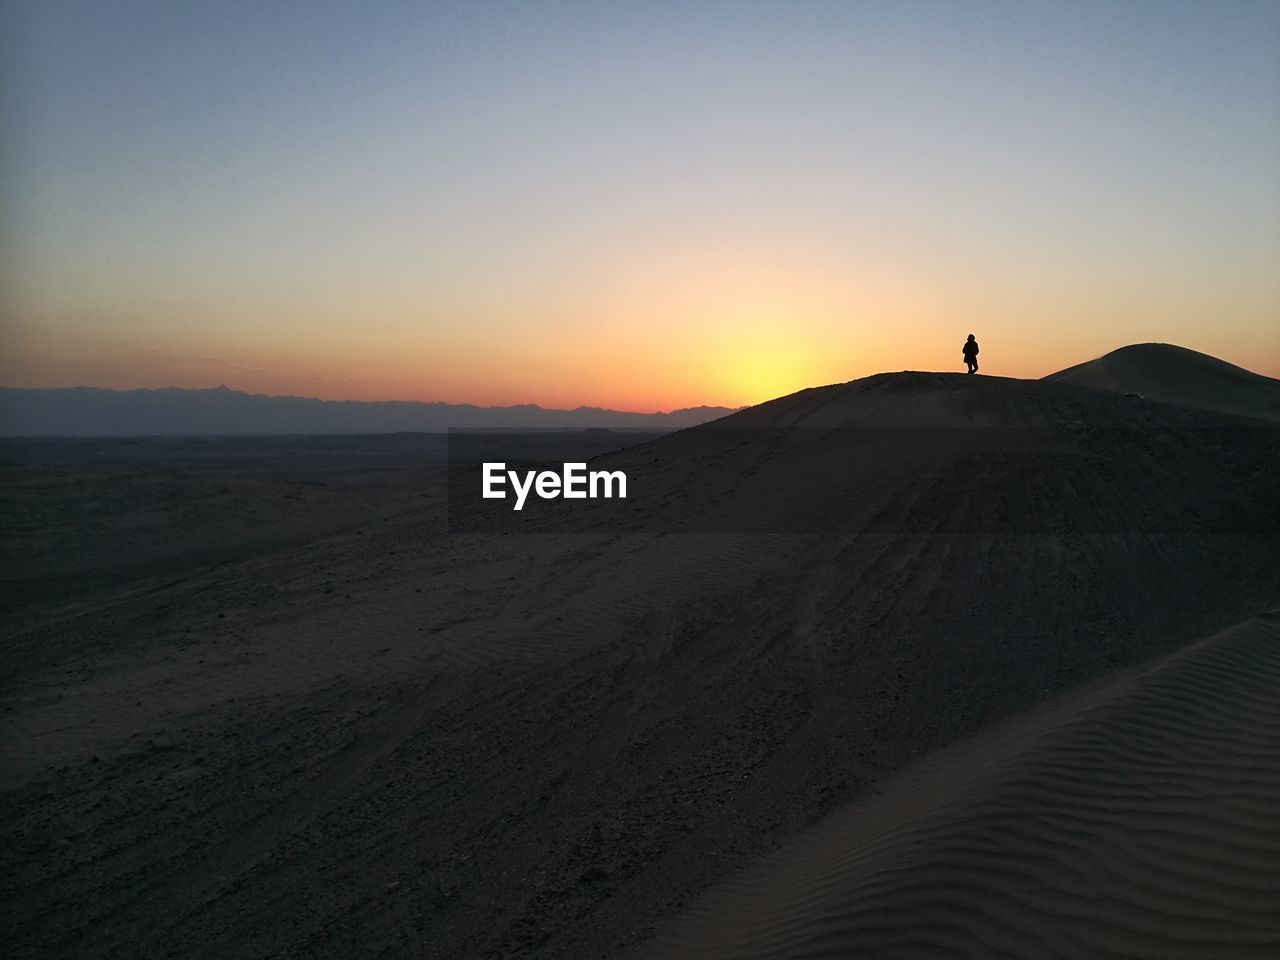 sky, sunset, scenics - nature, land, beauty in nature, tranquility, tranquil scene, environment, landscape, non-urban scene, real people, sand, nature, clear sky, desert, one person, copy space, silhouette, sand dune, mountain, arid climate, outdoors, climate